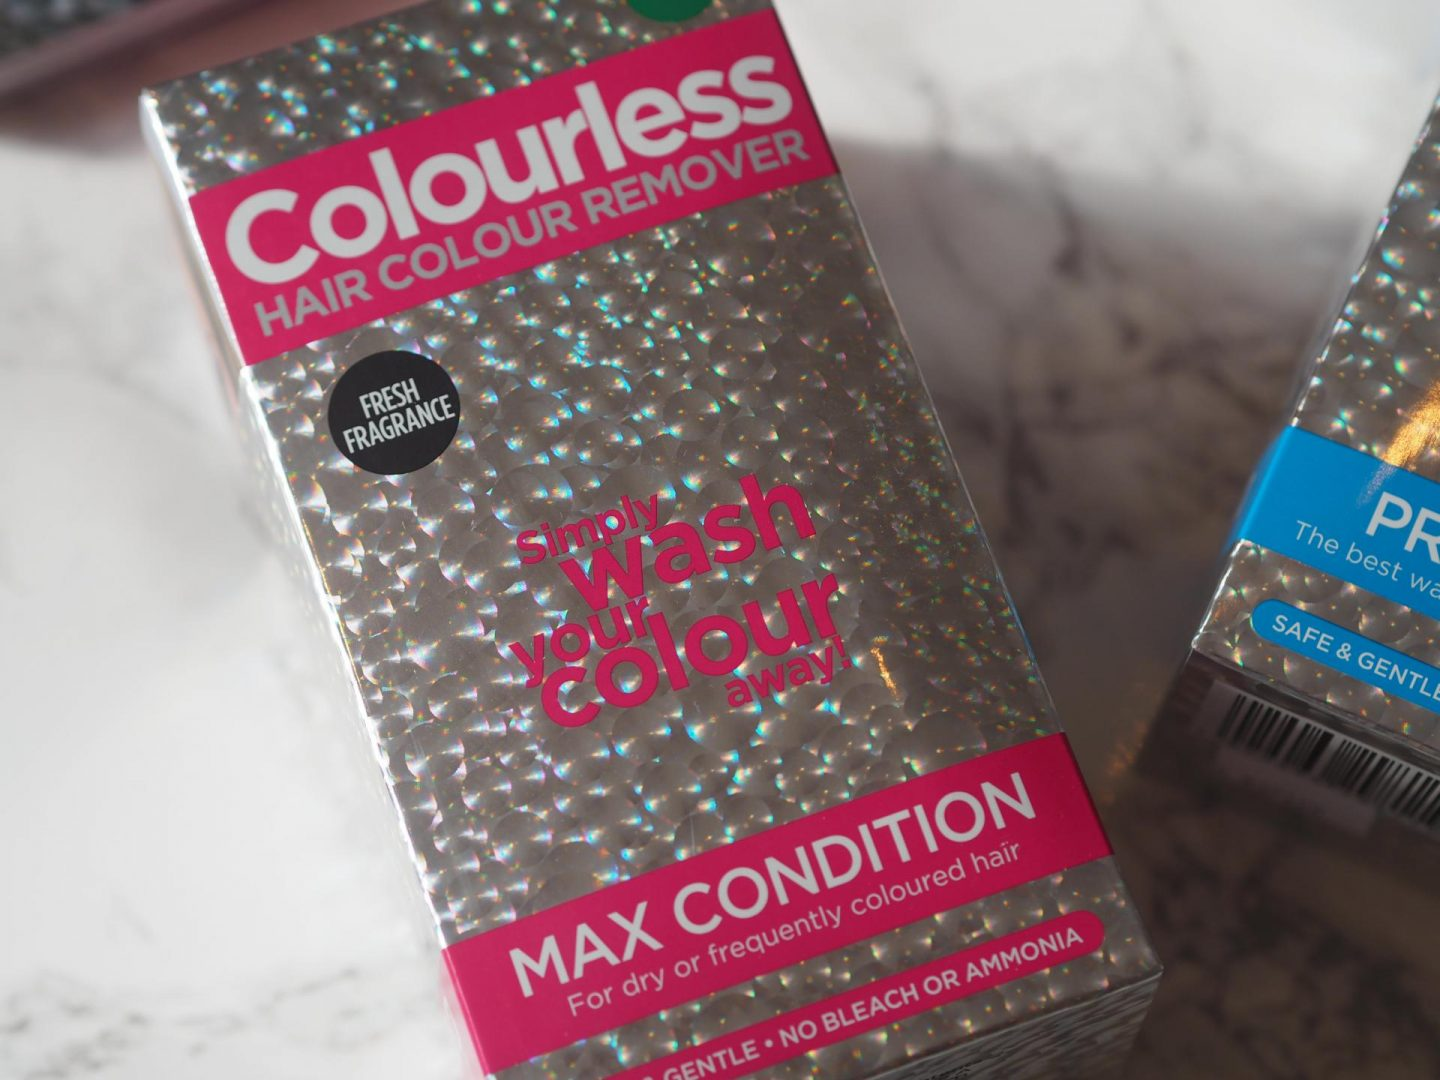 Colourless Hair Colour Remover - Product: Max Condition